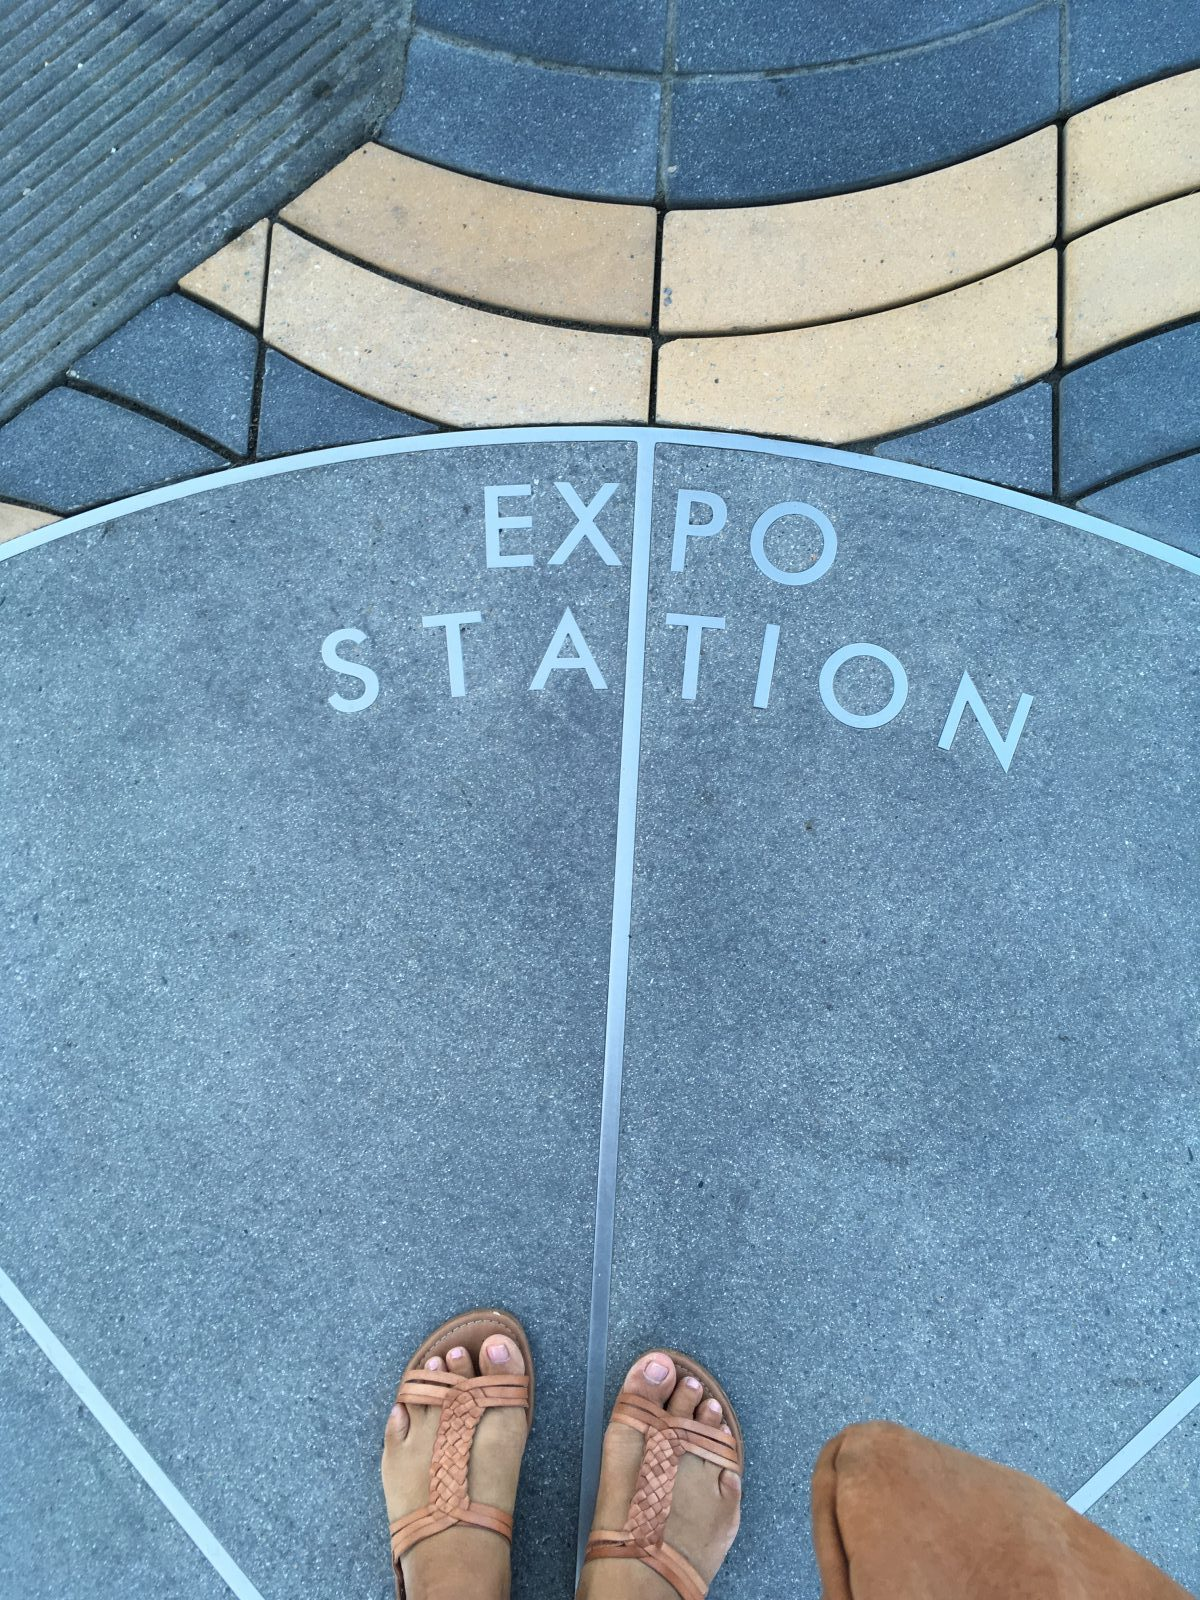 Expo Station